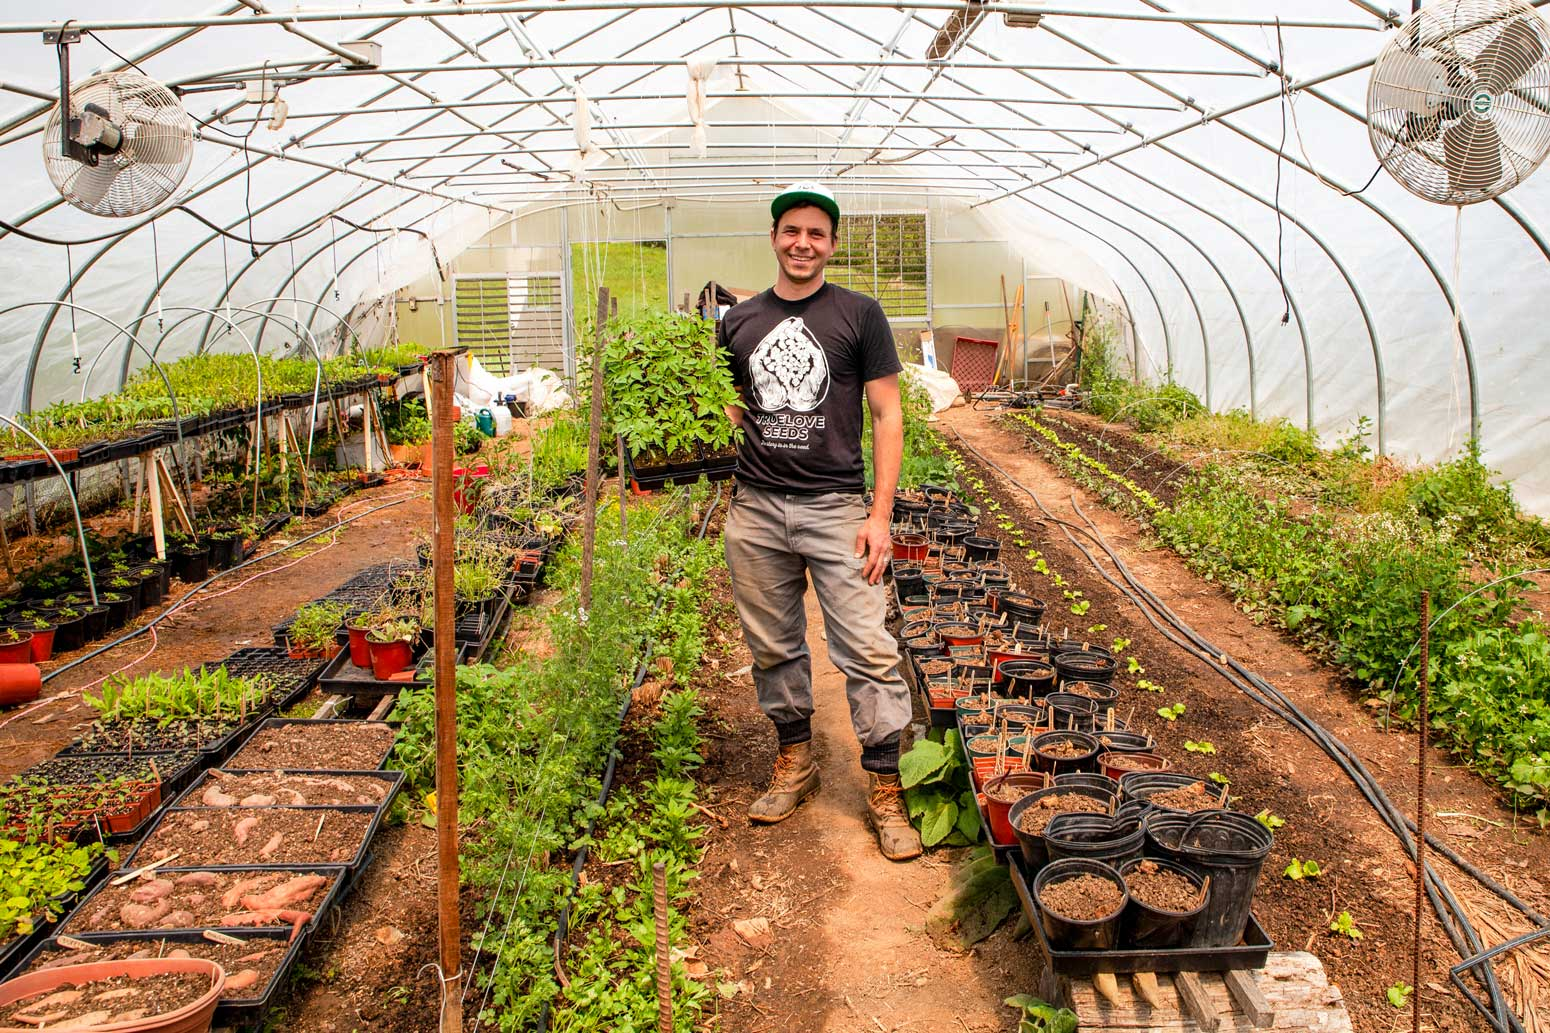 A gardener proudly showing off his nursery plants.